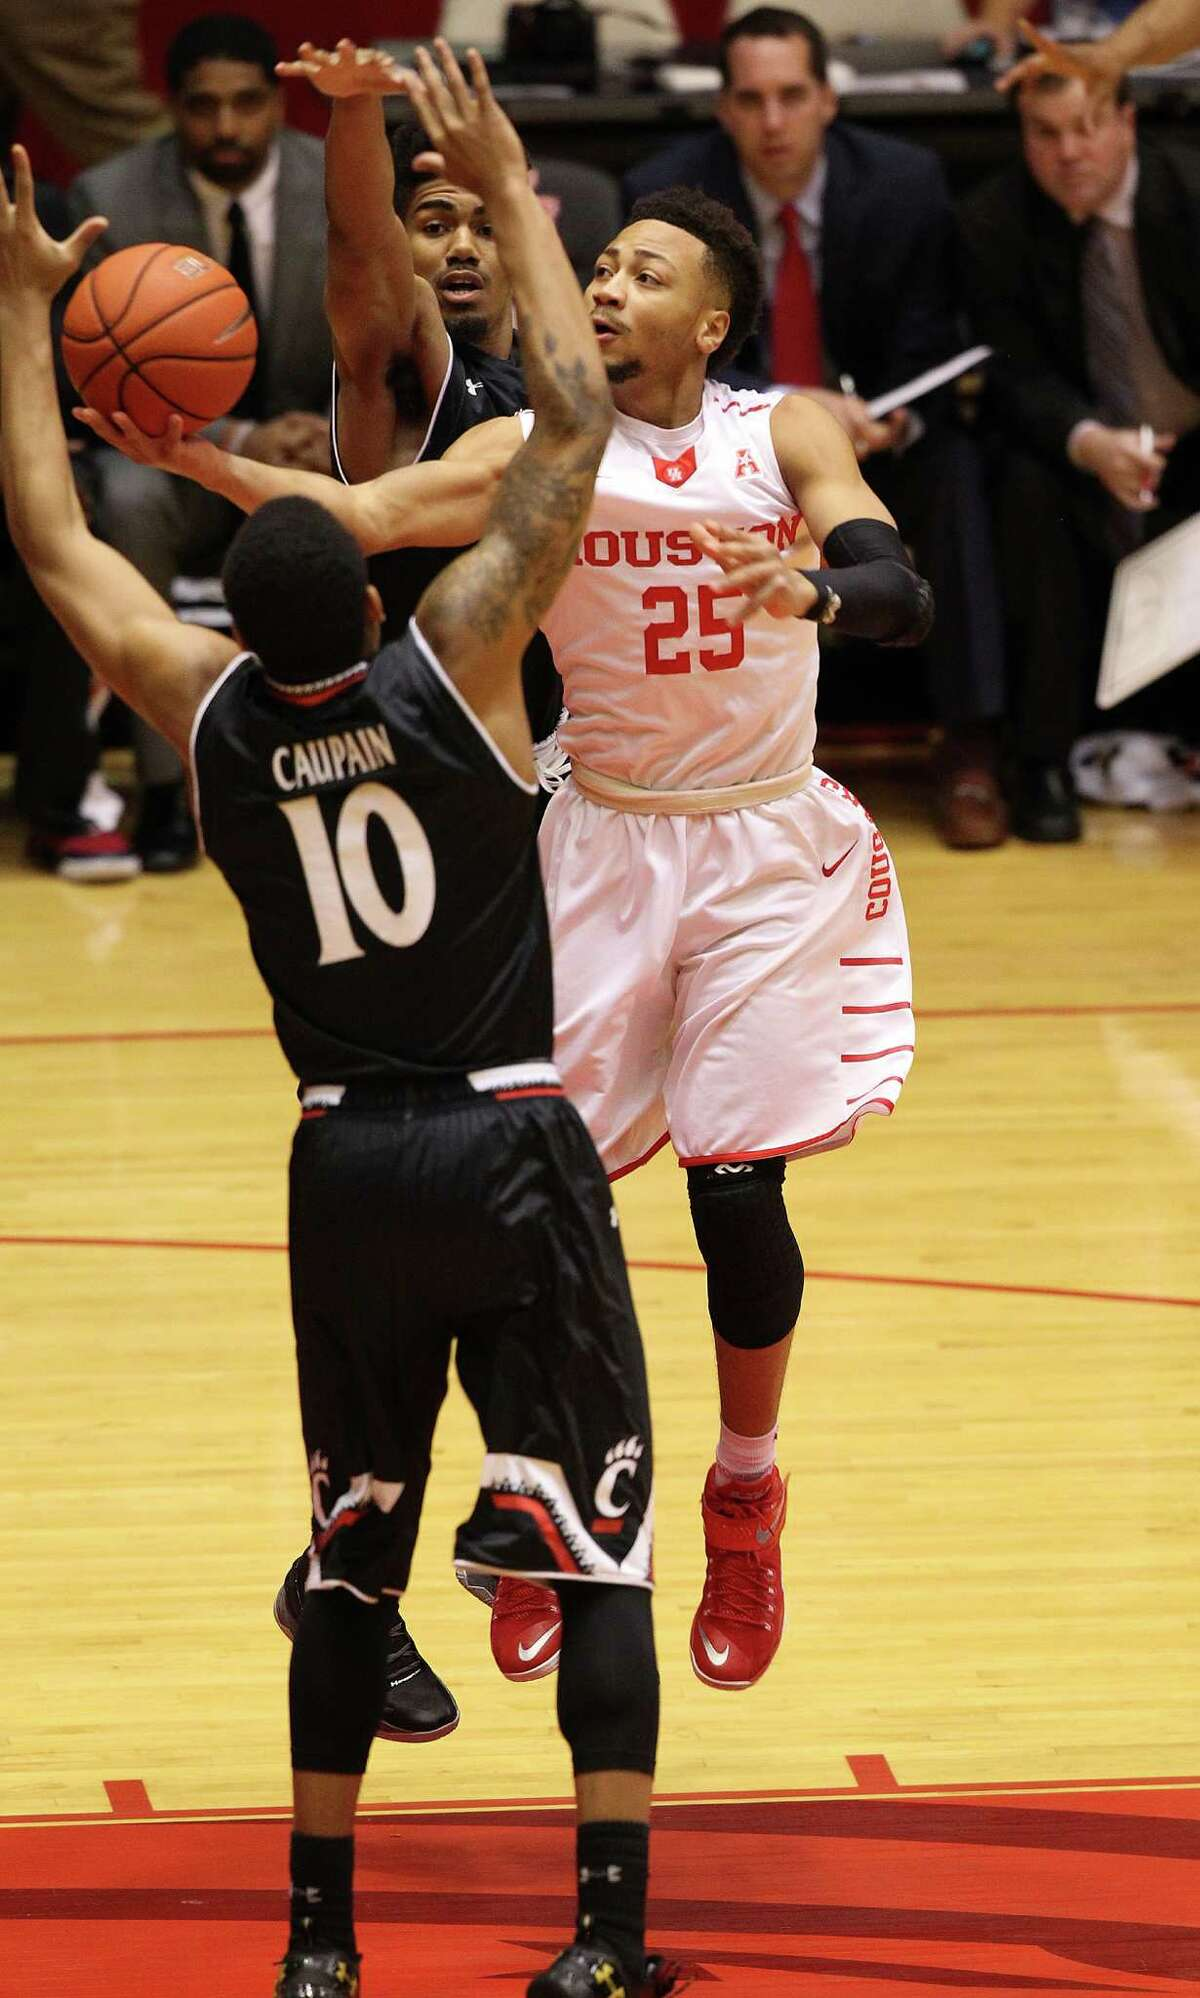 Houston Cougars guard Galen Robinson Jr. (25) puts up a shot around Cincinnati Bearcats guard Troy Caupain (10) in the first half of game action at Hofheinz Pavilion on Thursday, March 3, 2016, in Houston.